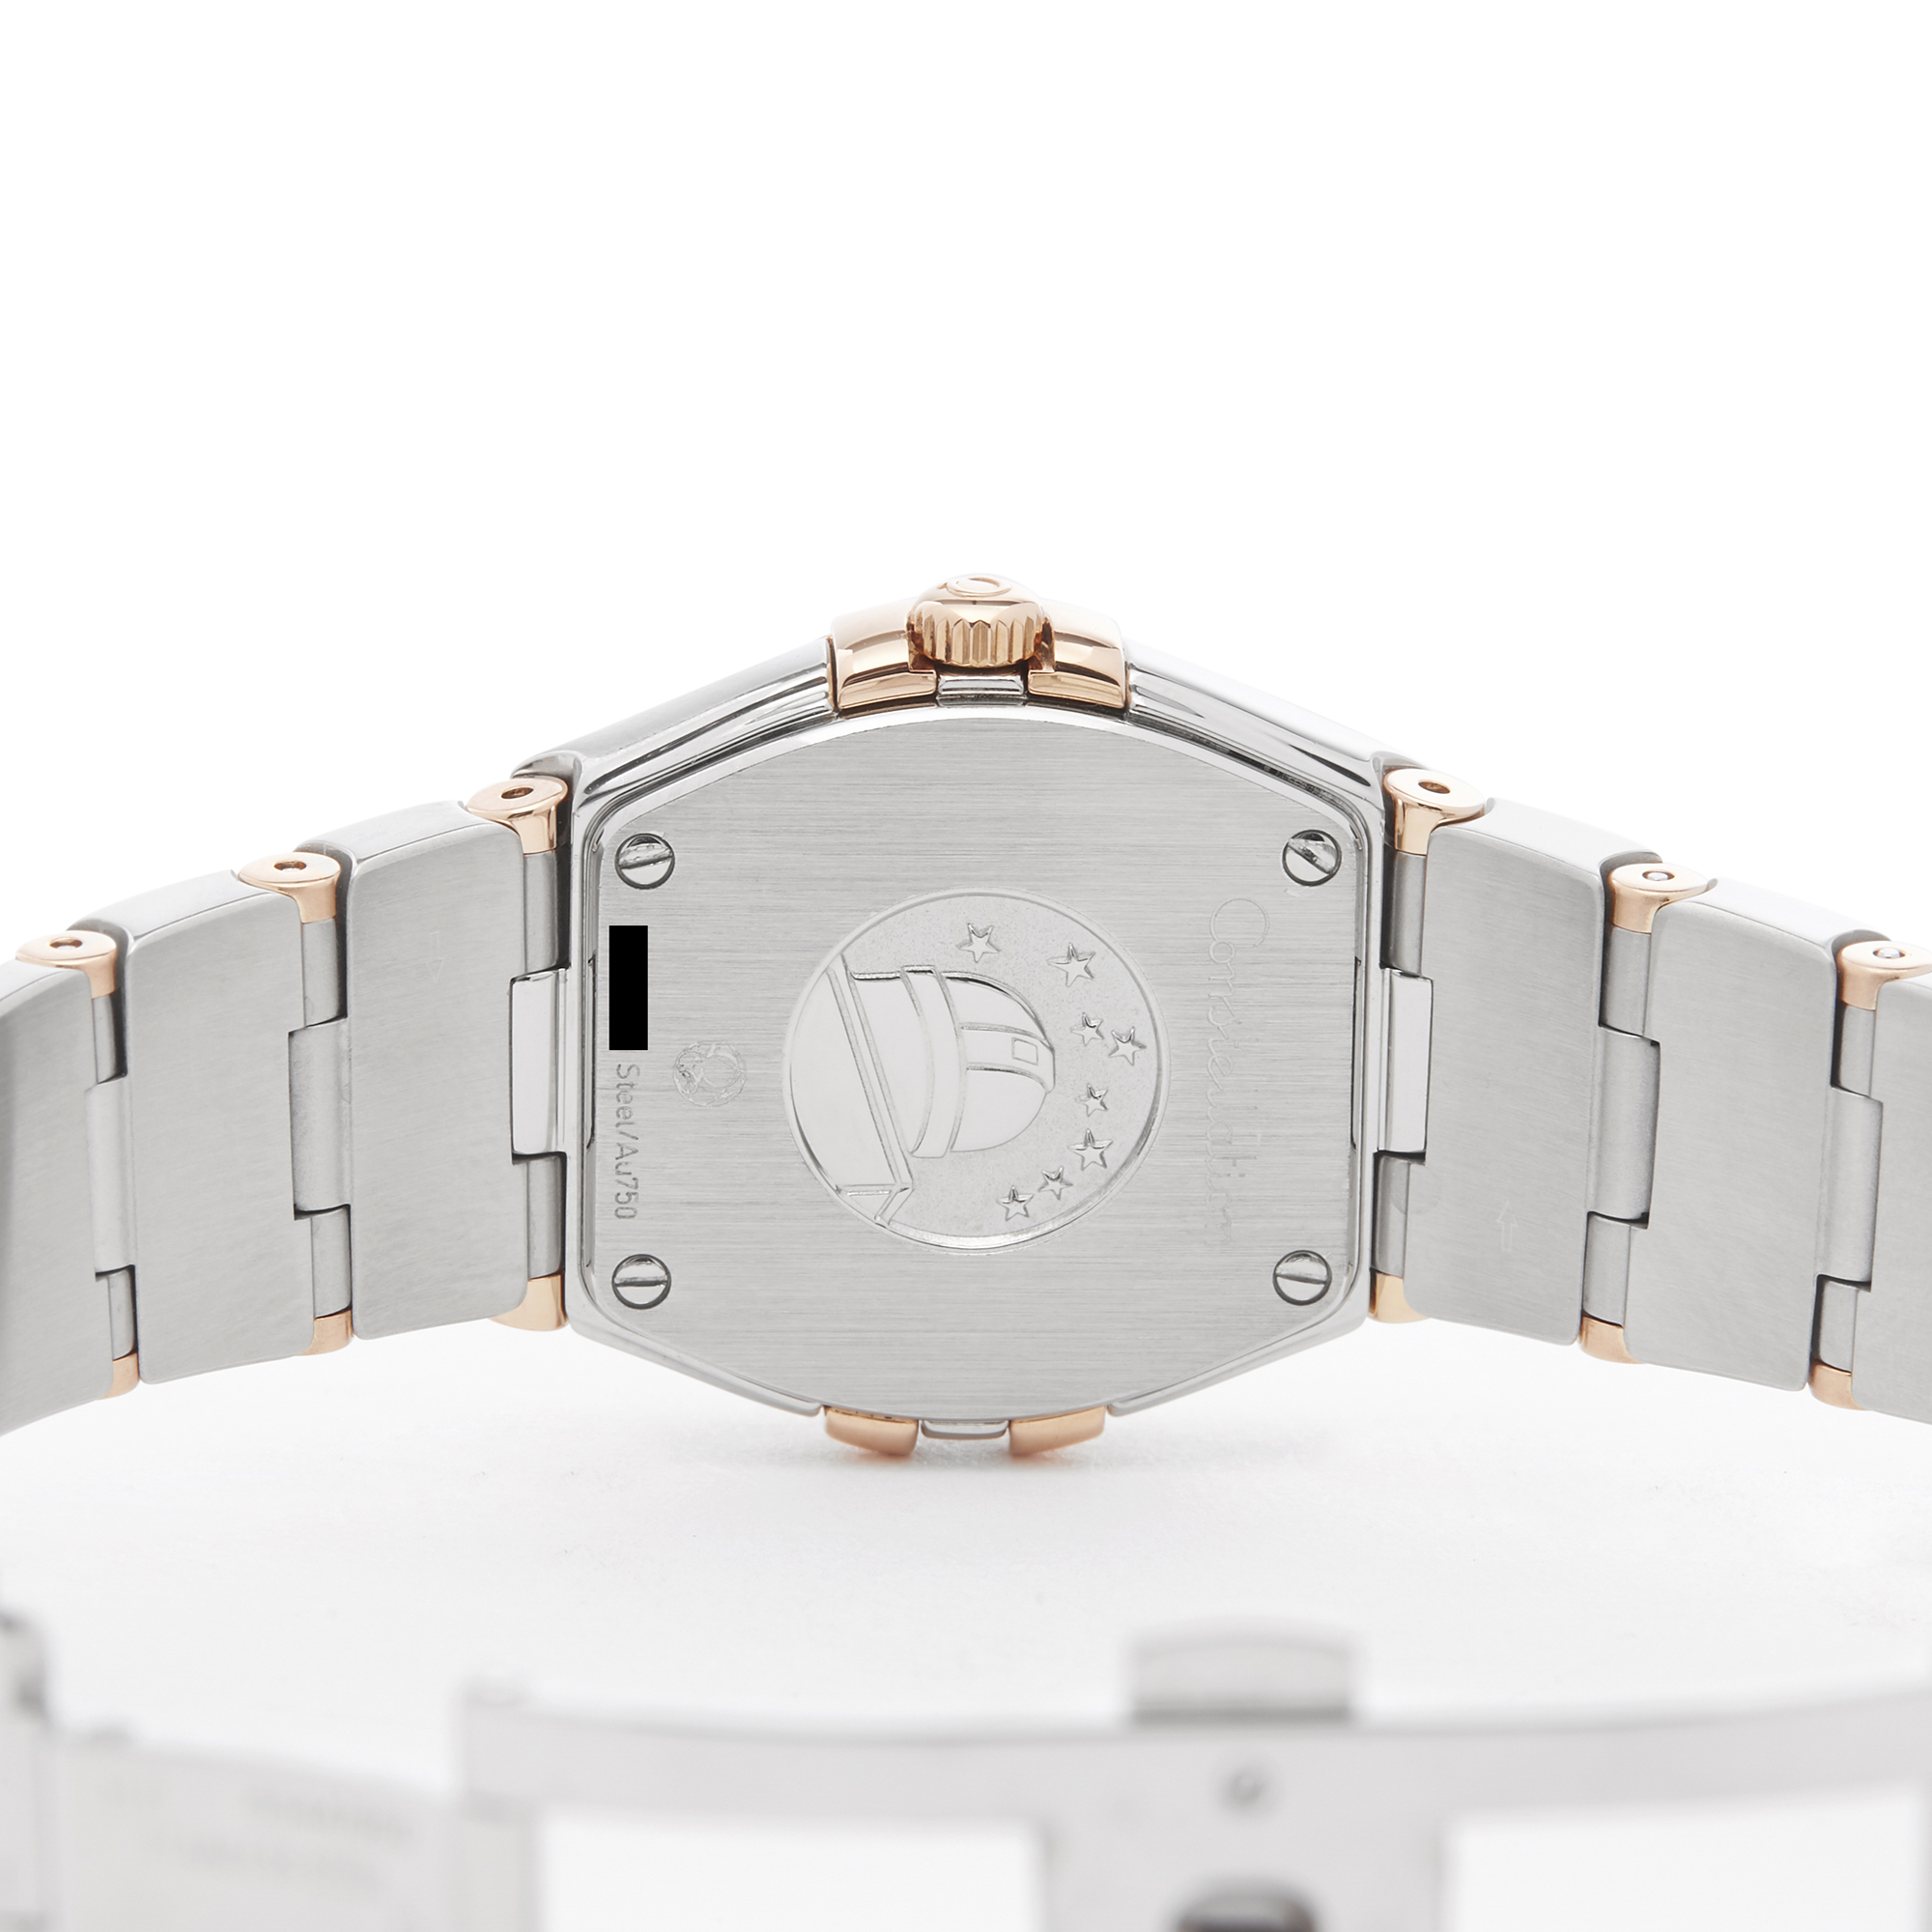 Omega Constellation 0 123.25.24.60.55.005 Ladies Stainless Steel & Rose Gold Diamond Mother Of Pearl - Image 3 of 7